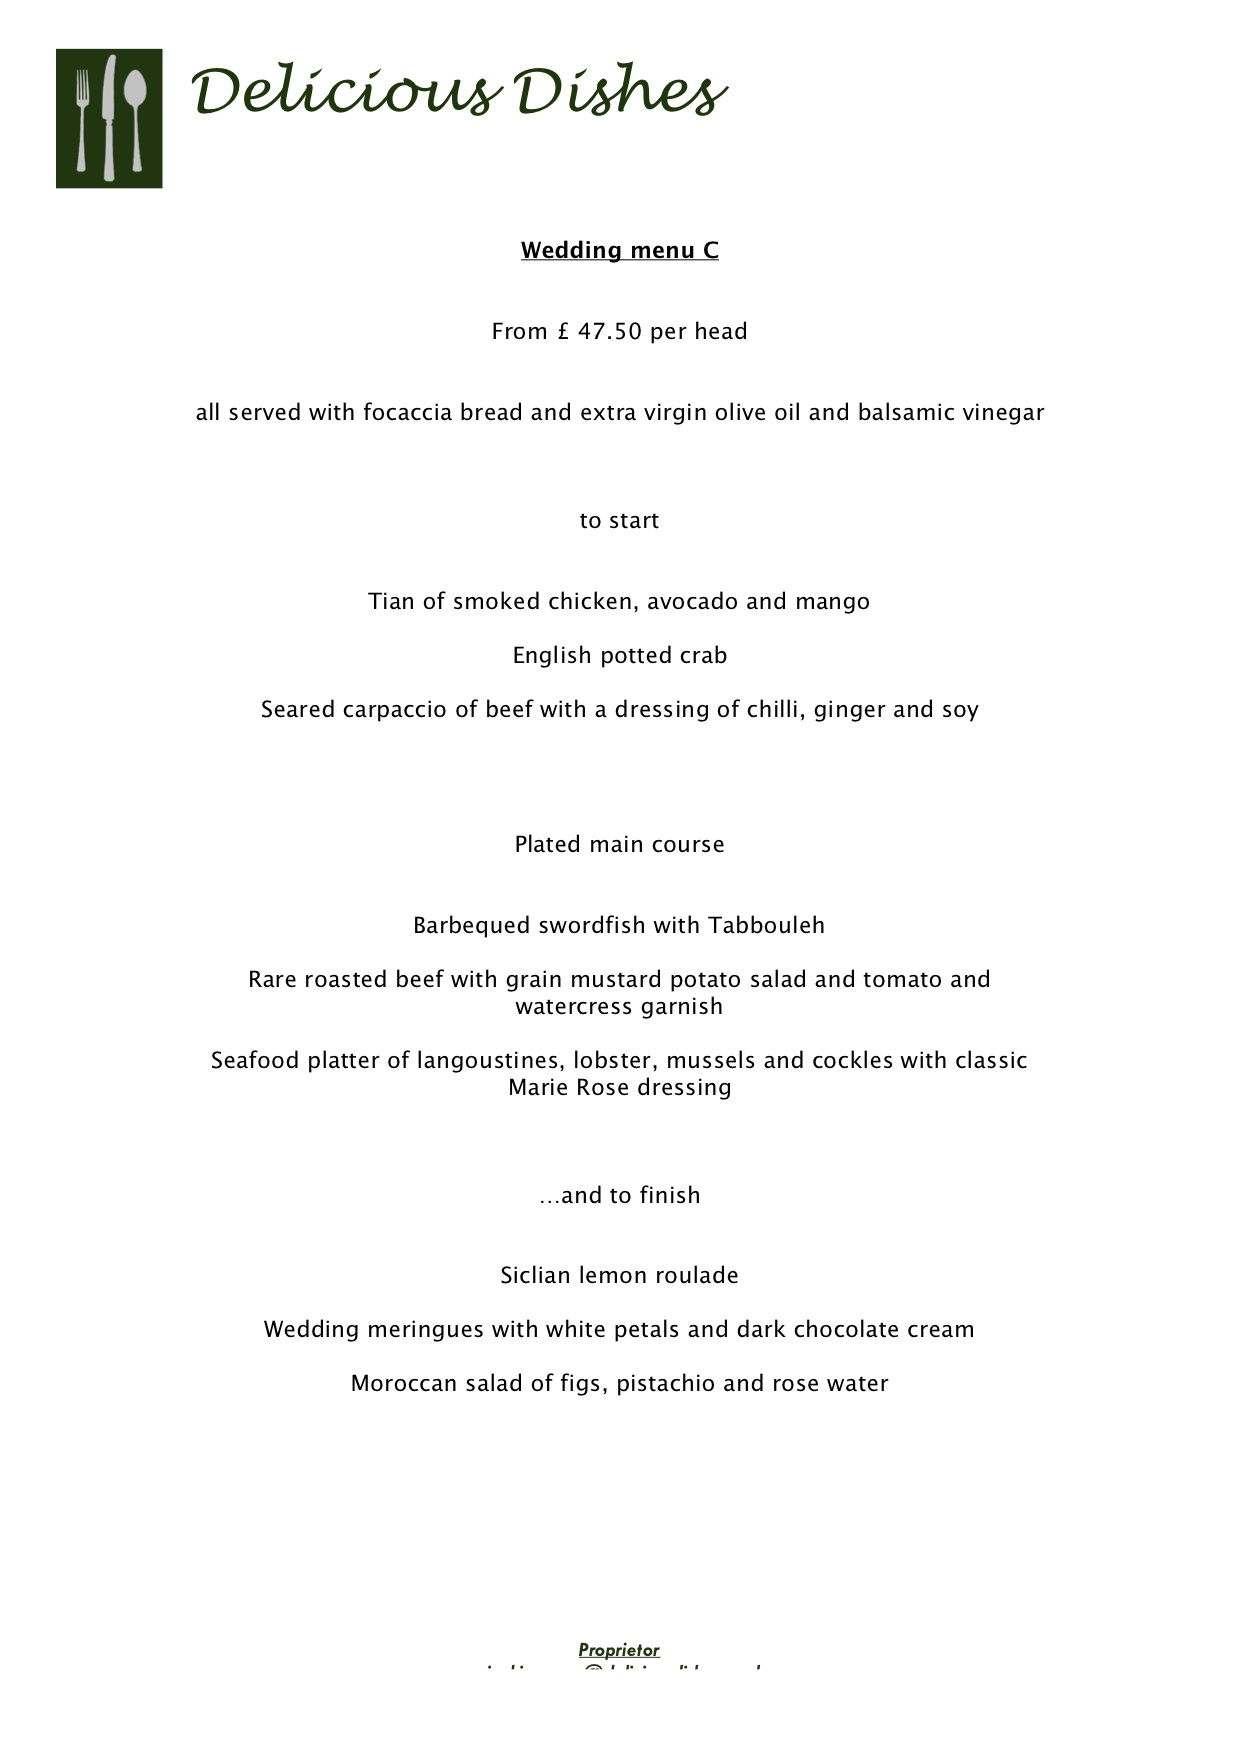 wedding-menu-C-From-£47.50-per-head – Delicious Dishes ...